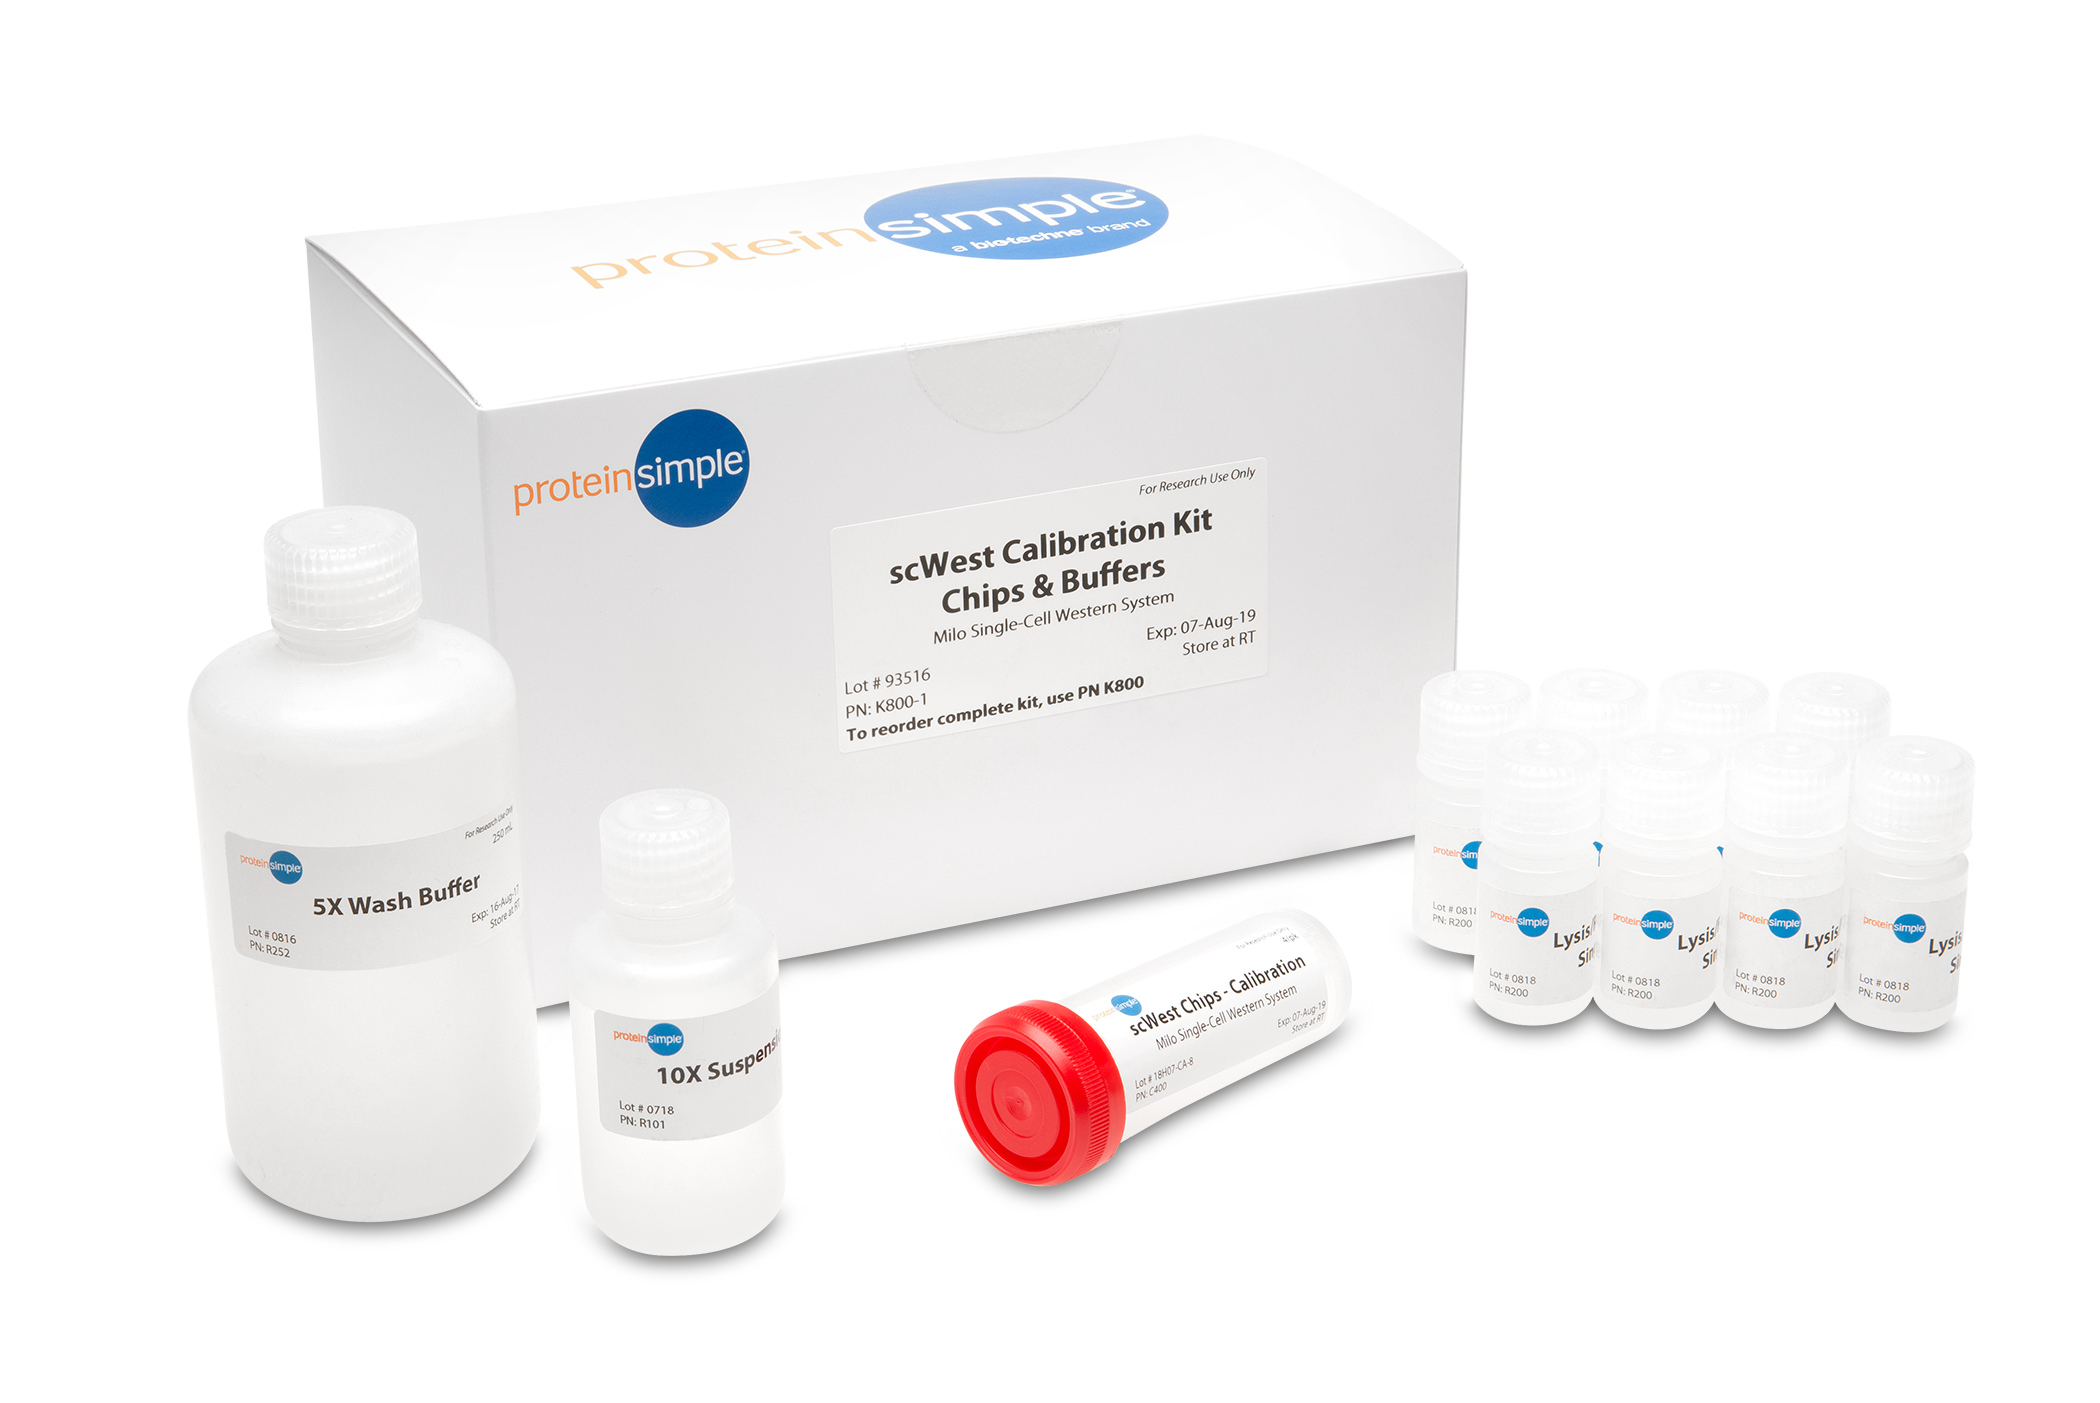 ProteinSimple scWest Calibration Kit for Single-Cell Western